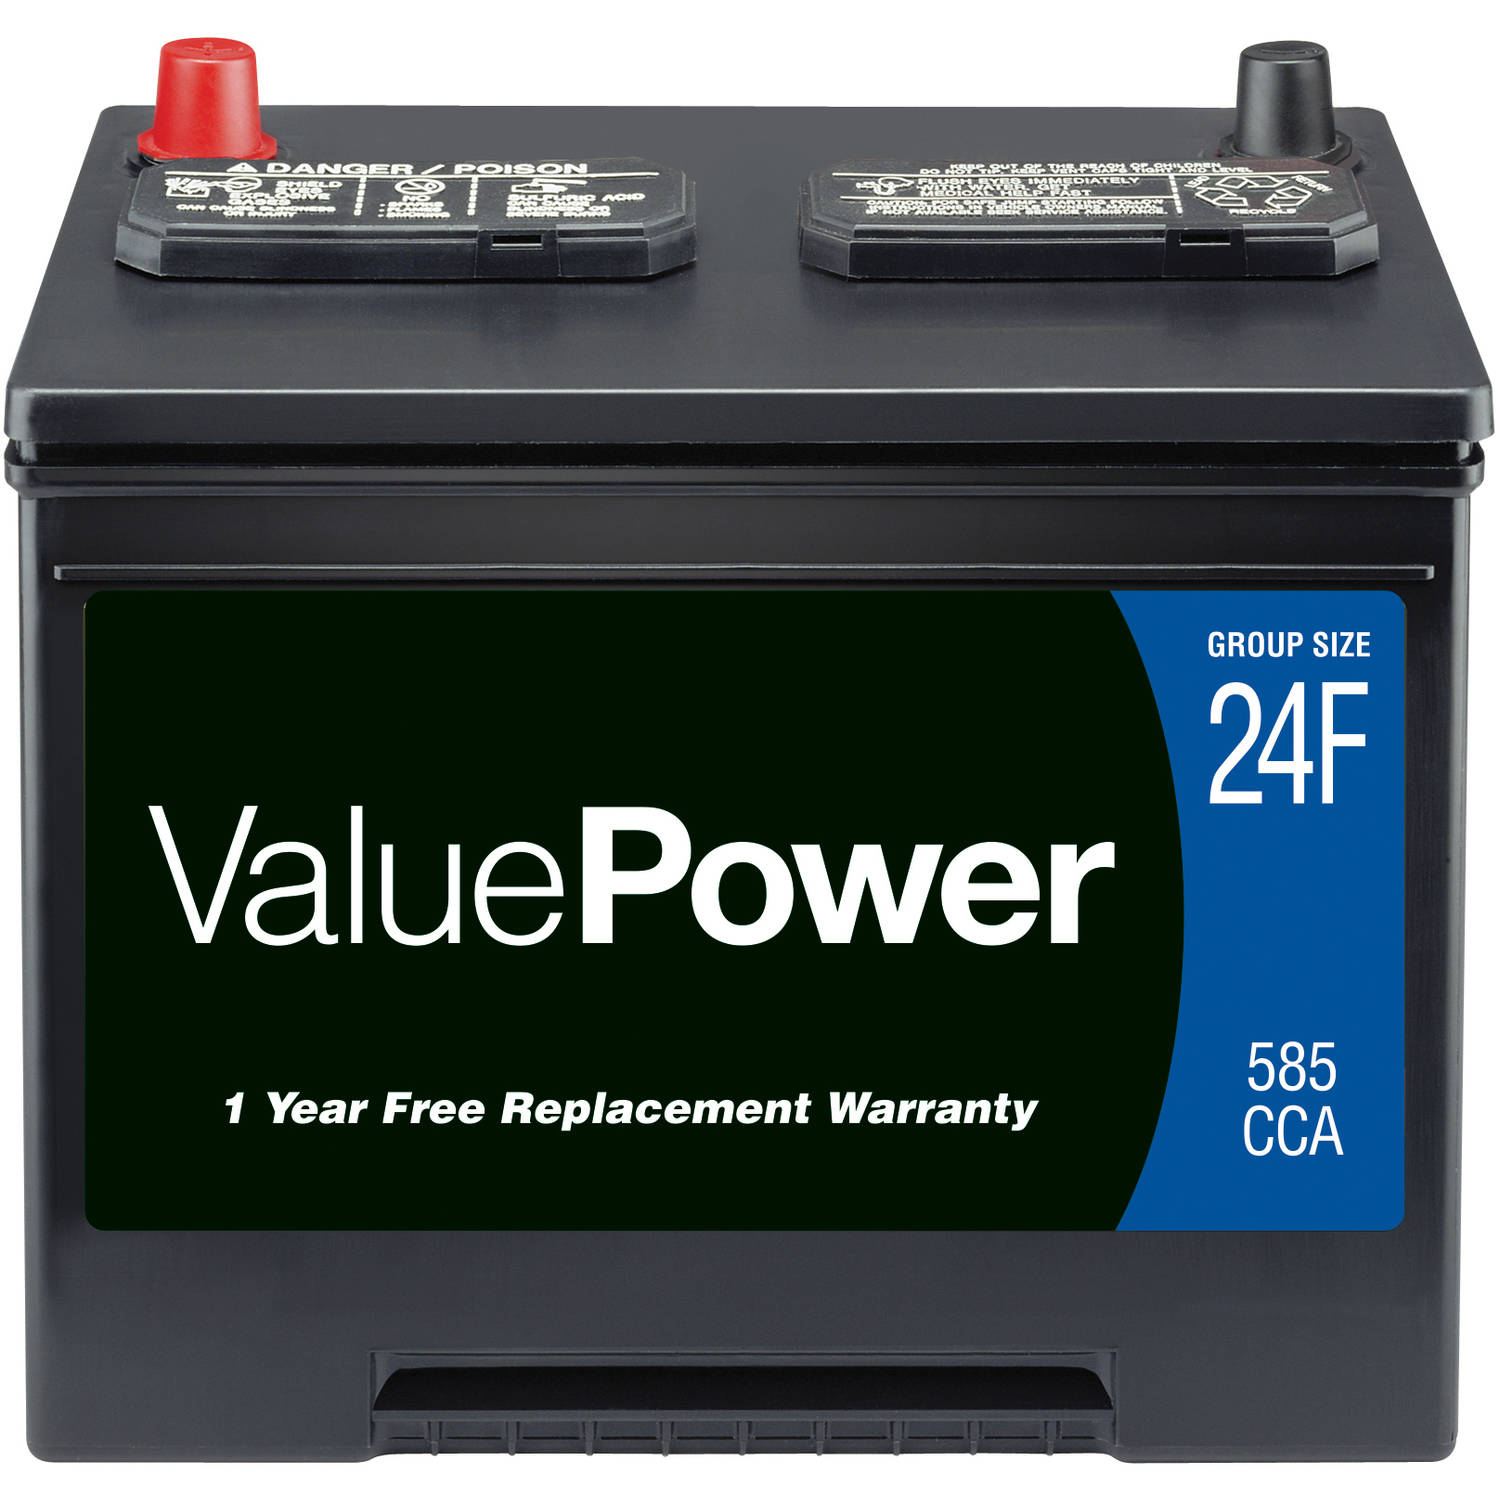 Refurbished Car Batteries Near Me >> Is Walmart S Valuepower Everstart Value Car Battery Any Good Even If